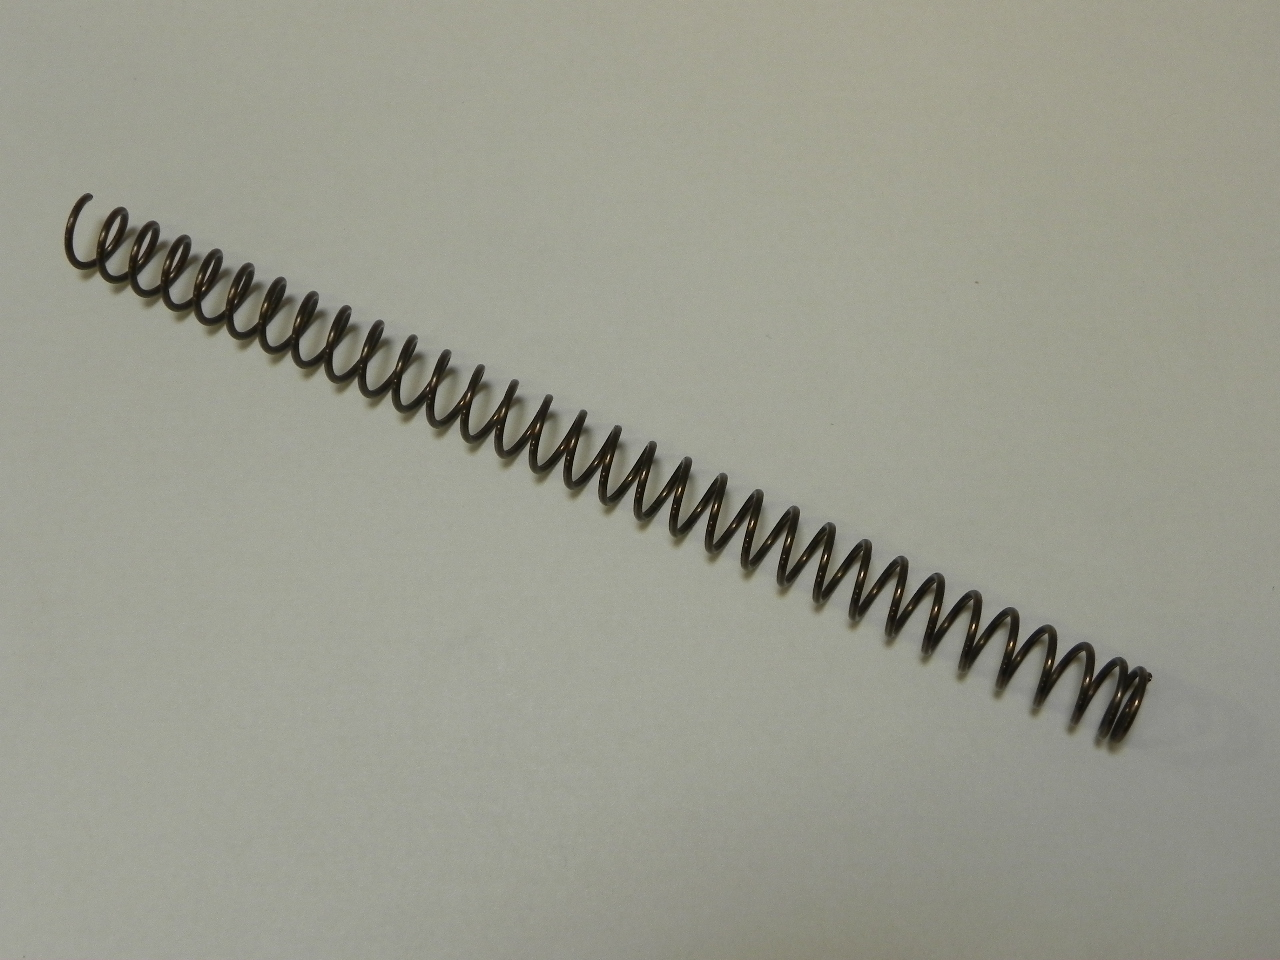 41916 - 1911 Gov't 16 pound recoil spring